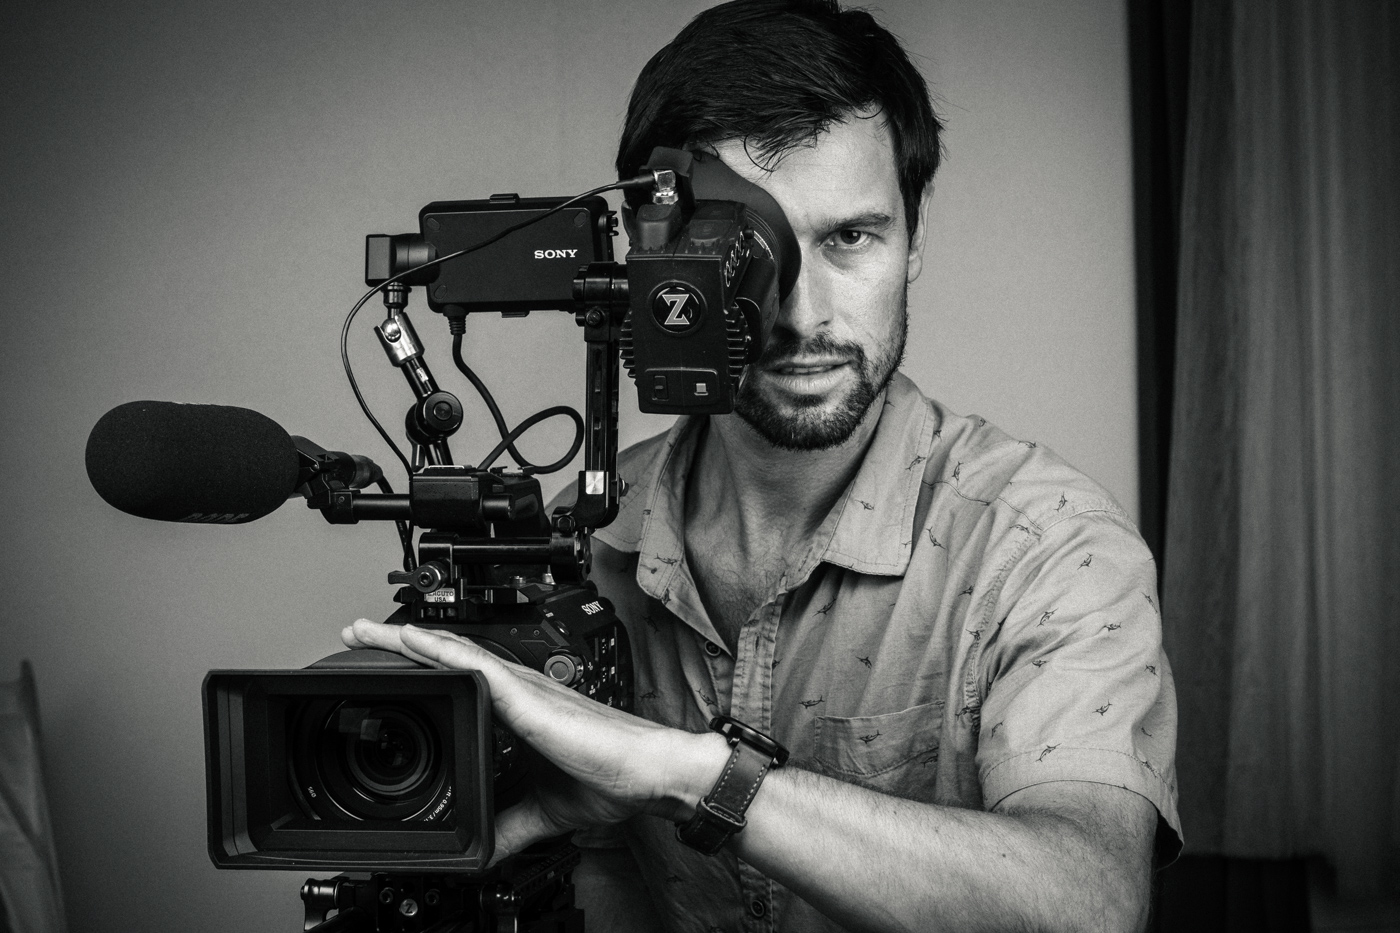 Troy Brajkovich, Director of Photography and Founder